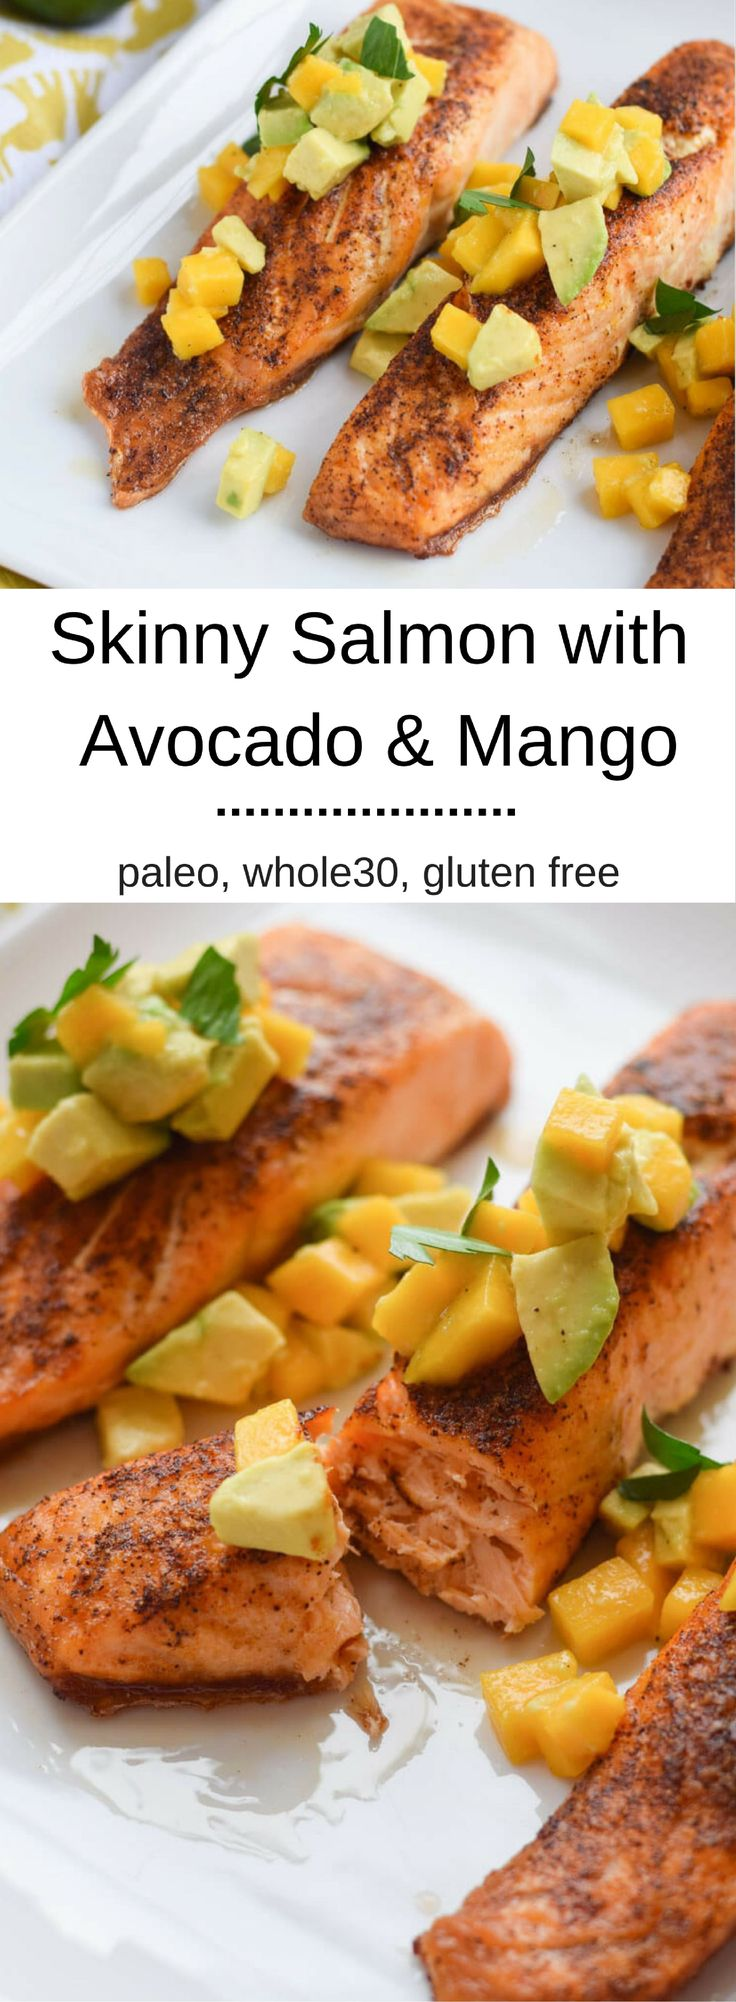 Skinny Salmon with Avocado and Mango - delicious, smokey flavor with a sweet mango and avocado topping.  {gluten free, paleo, whole30}